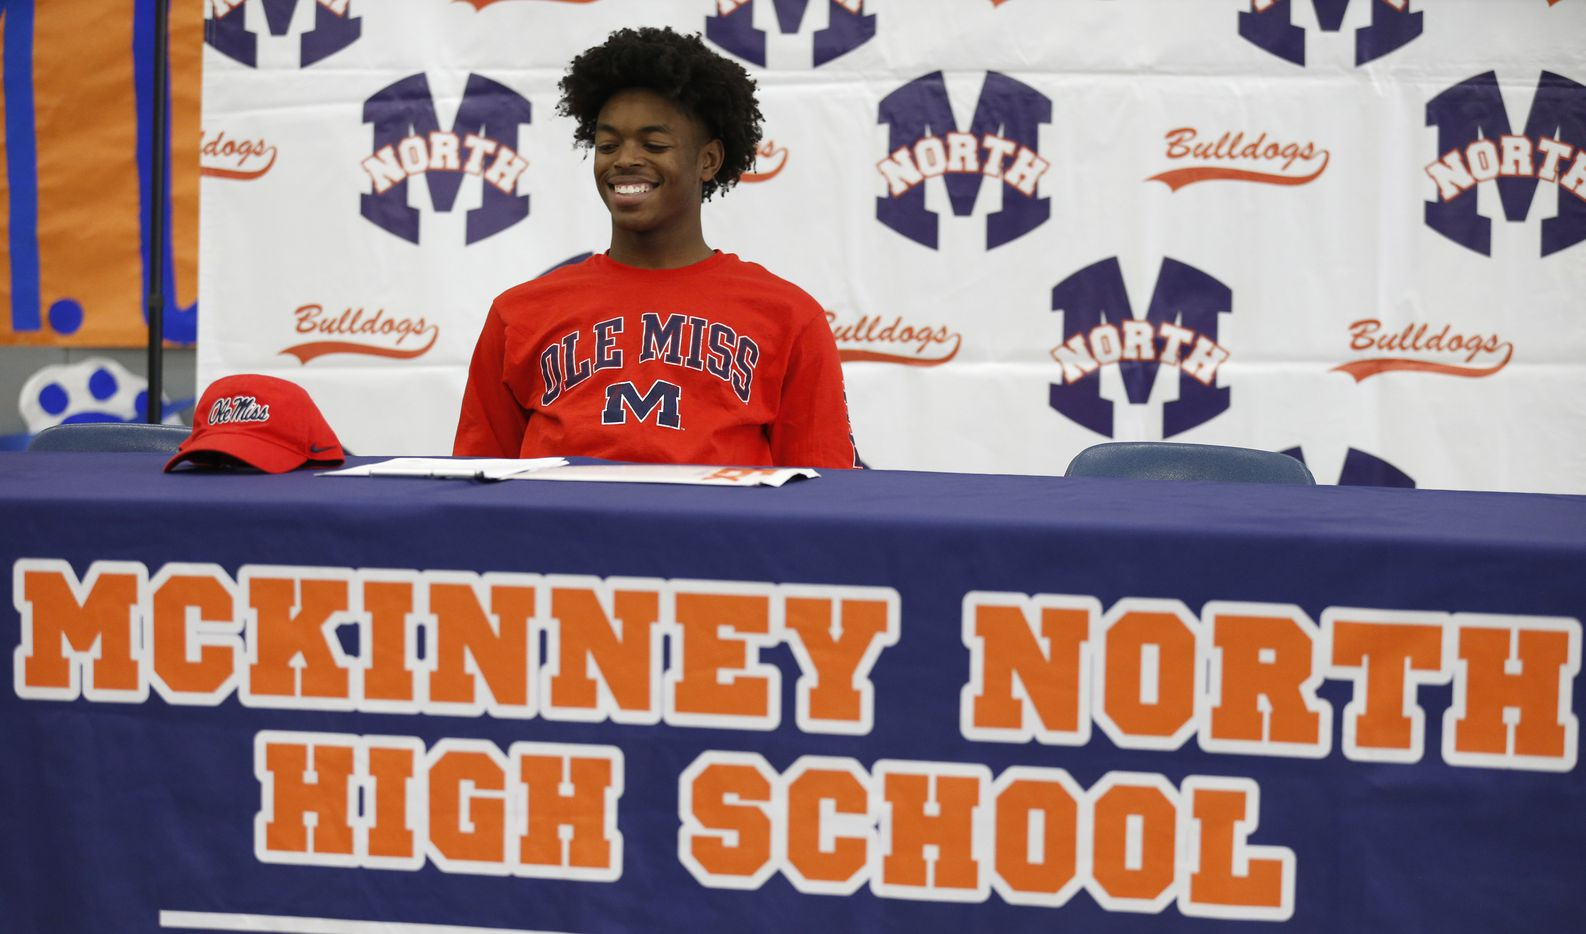 McKinney North wide receiver J.J. Henry is all smiles as he prepares to sign his letter of intent to play for the University of Mississippi during a signing day ceremony at McKinney North High School on Wednesday, December 16, 2020 in McKinney, Texas. (Vernon Bryant/The Dallas Morning News)